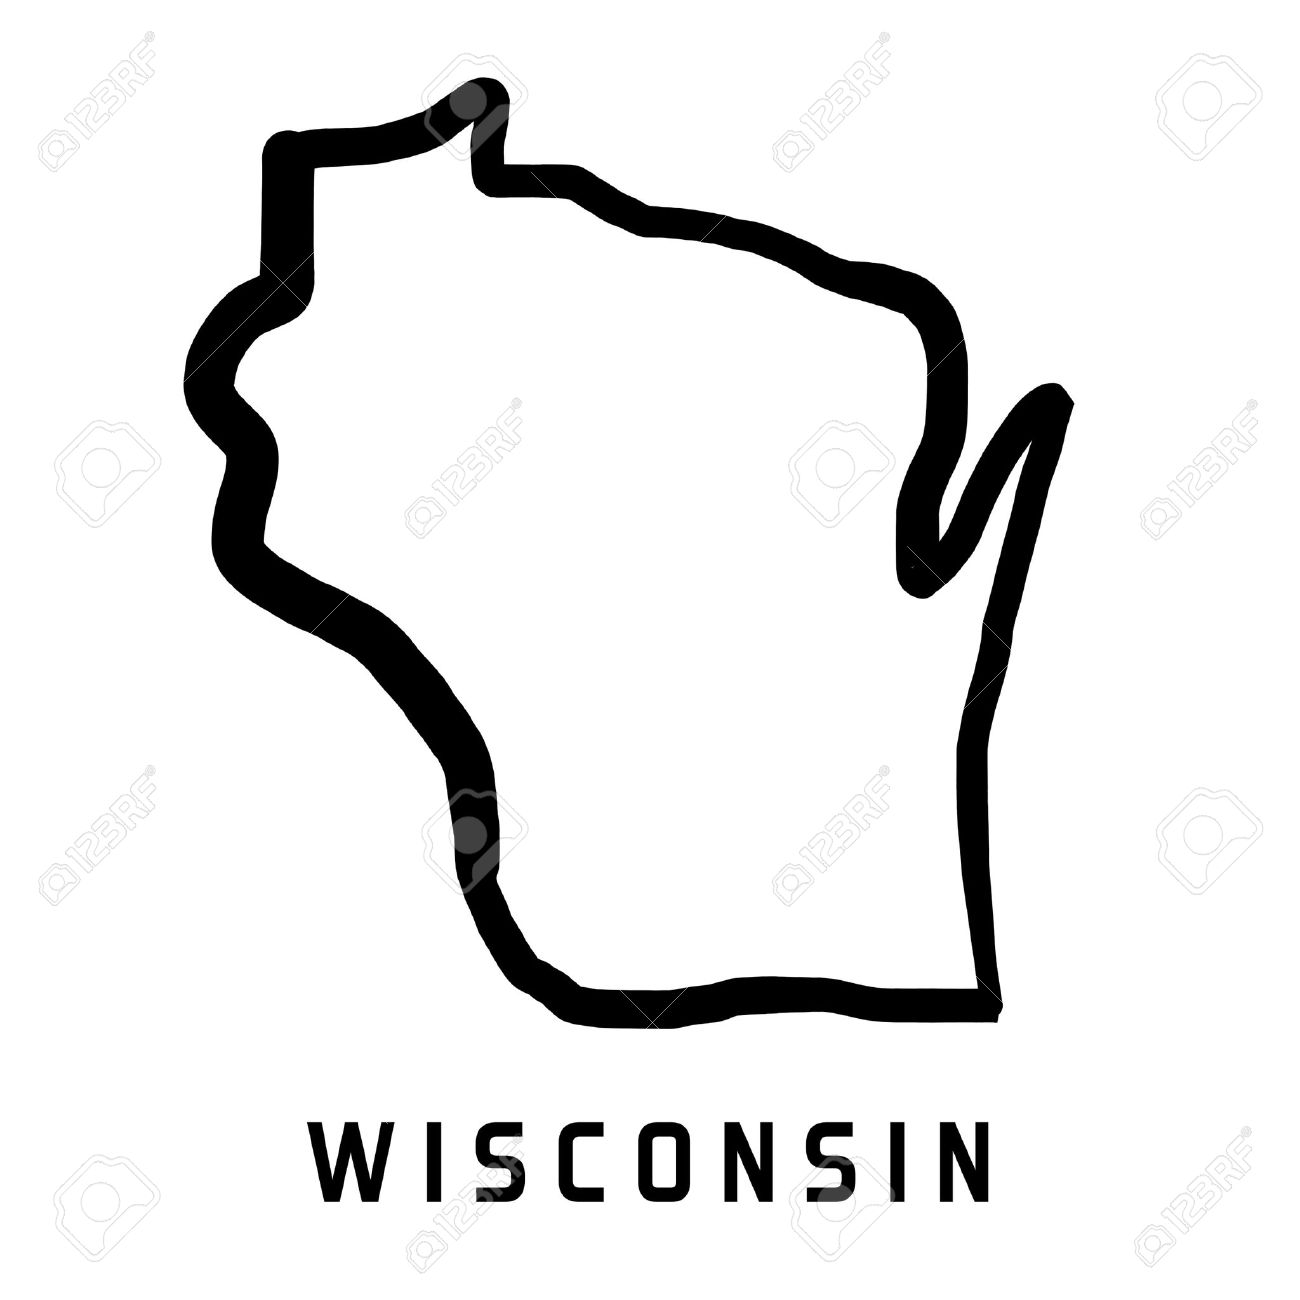 Wisconsin Map Outline Smooth Simplified Us State Shape Map Vector Stock Vector 72578243